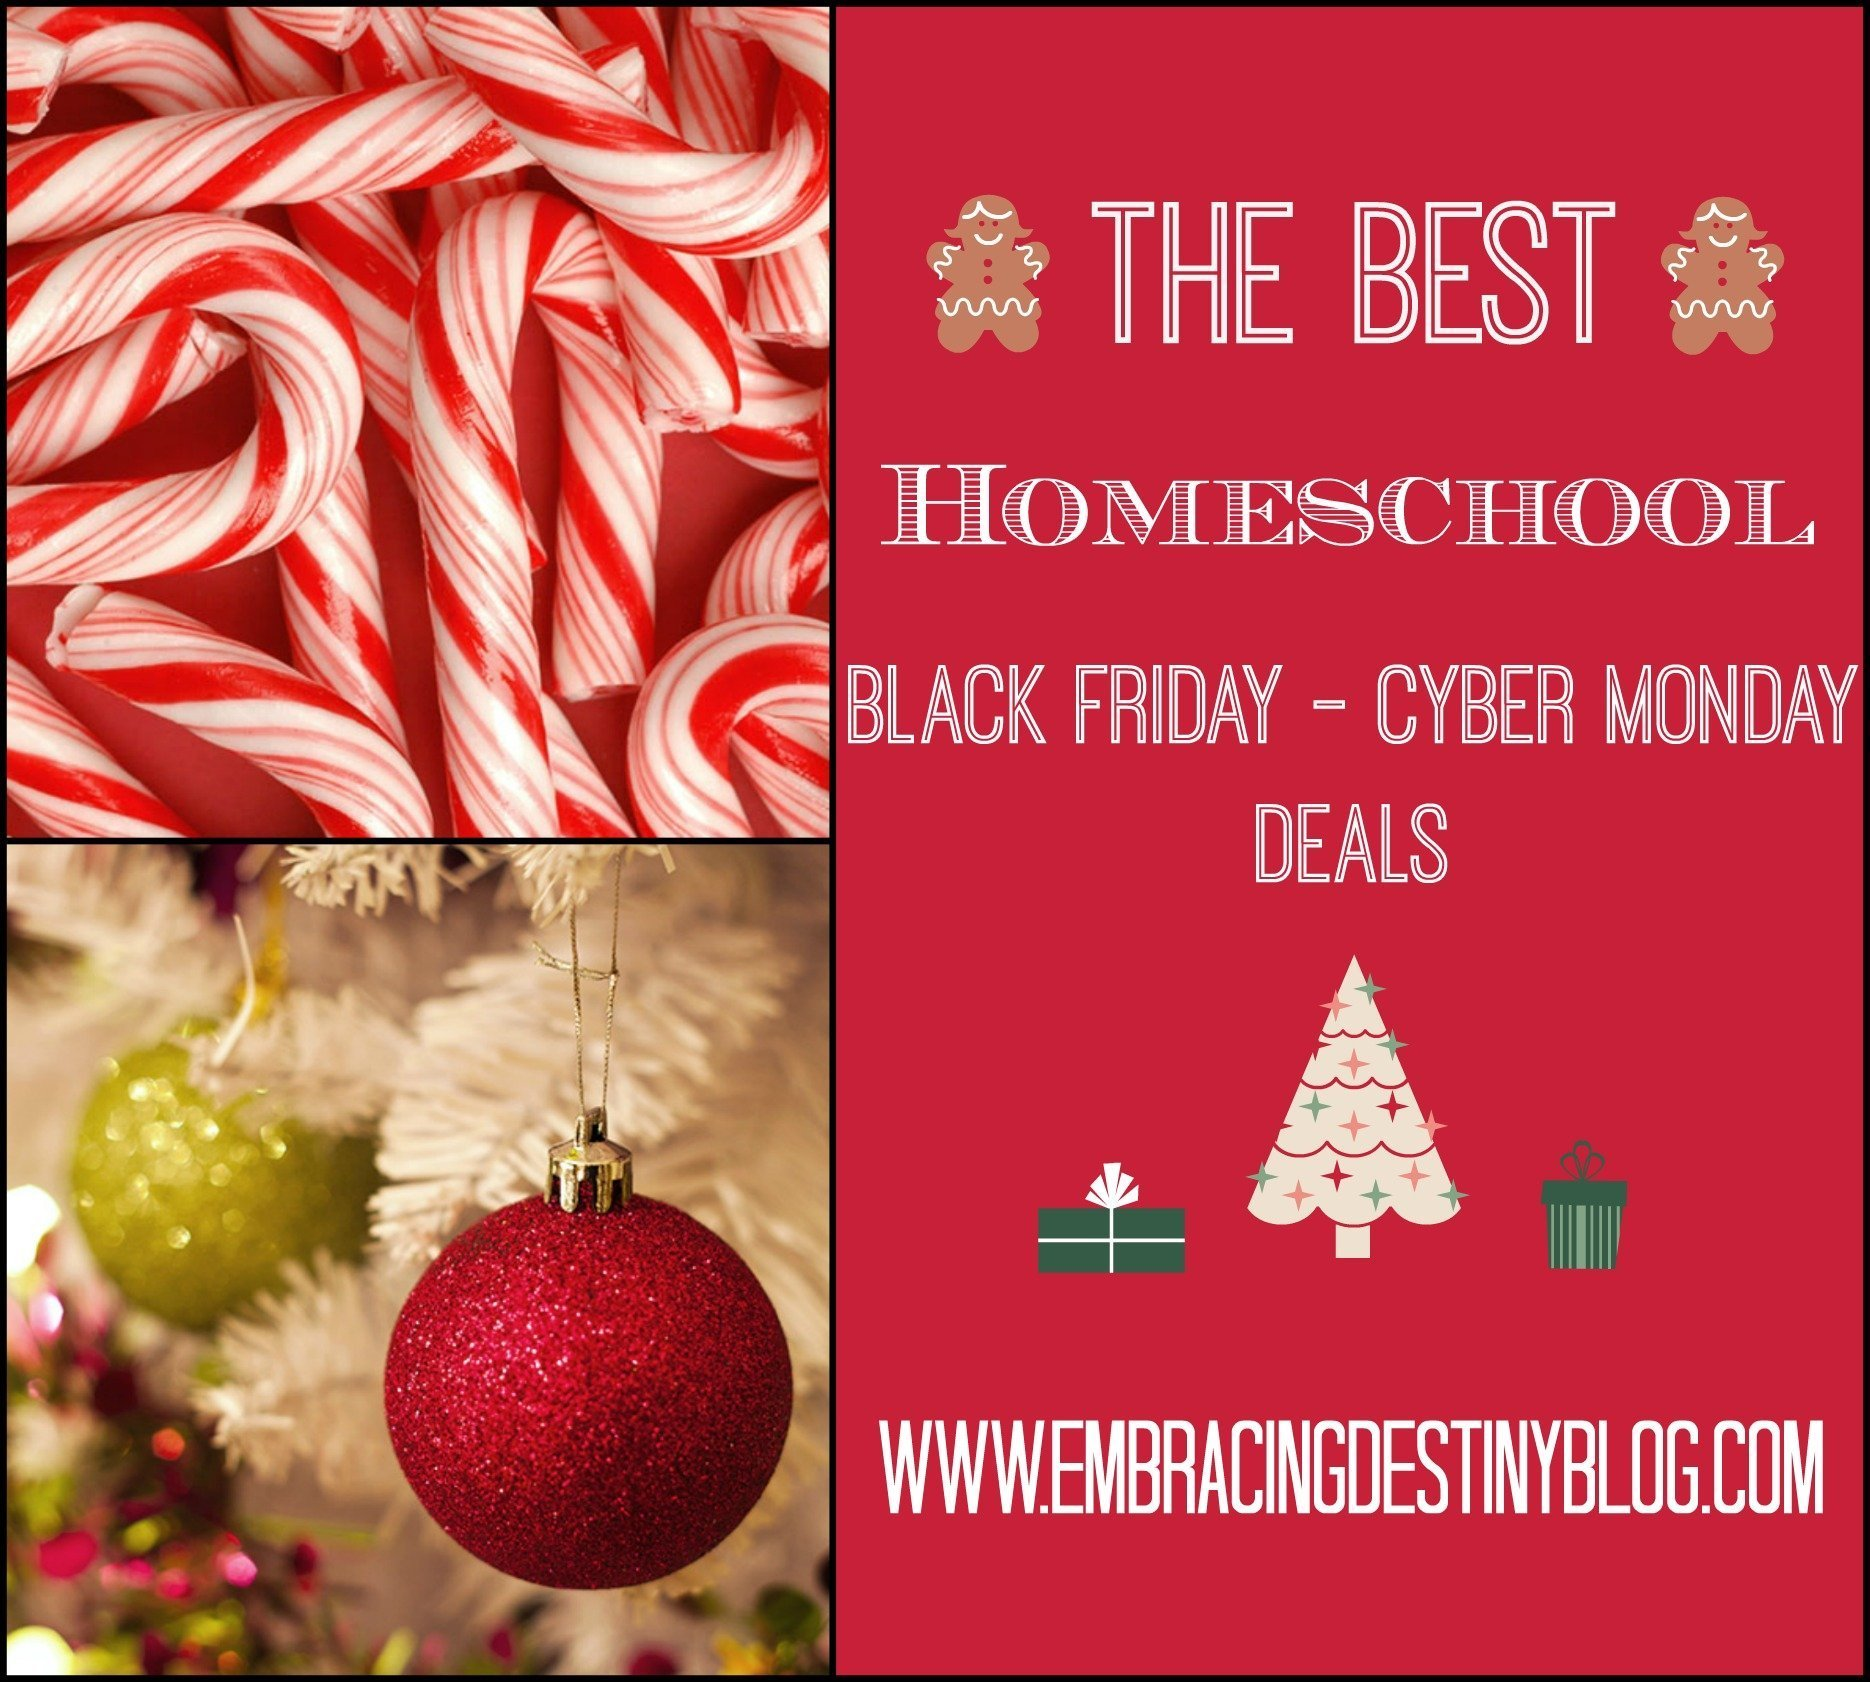 The Best Homeschool Black Friday through Cyber Monday Deals